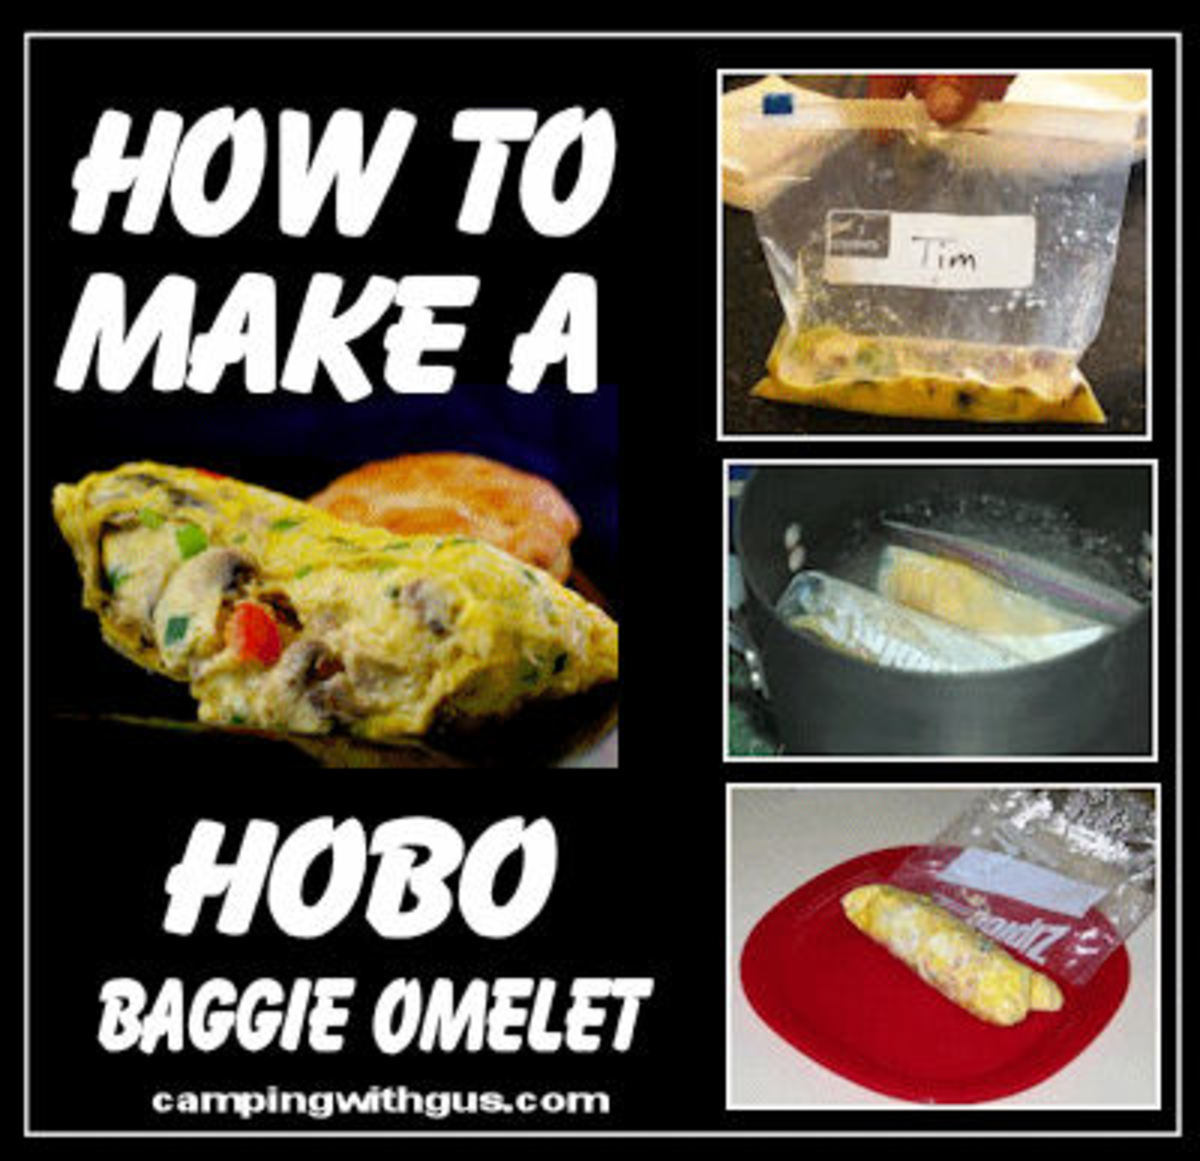 Hobo Baggie Omelets: Easy Camping Recipes for Kids